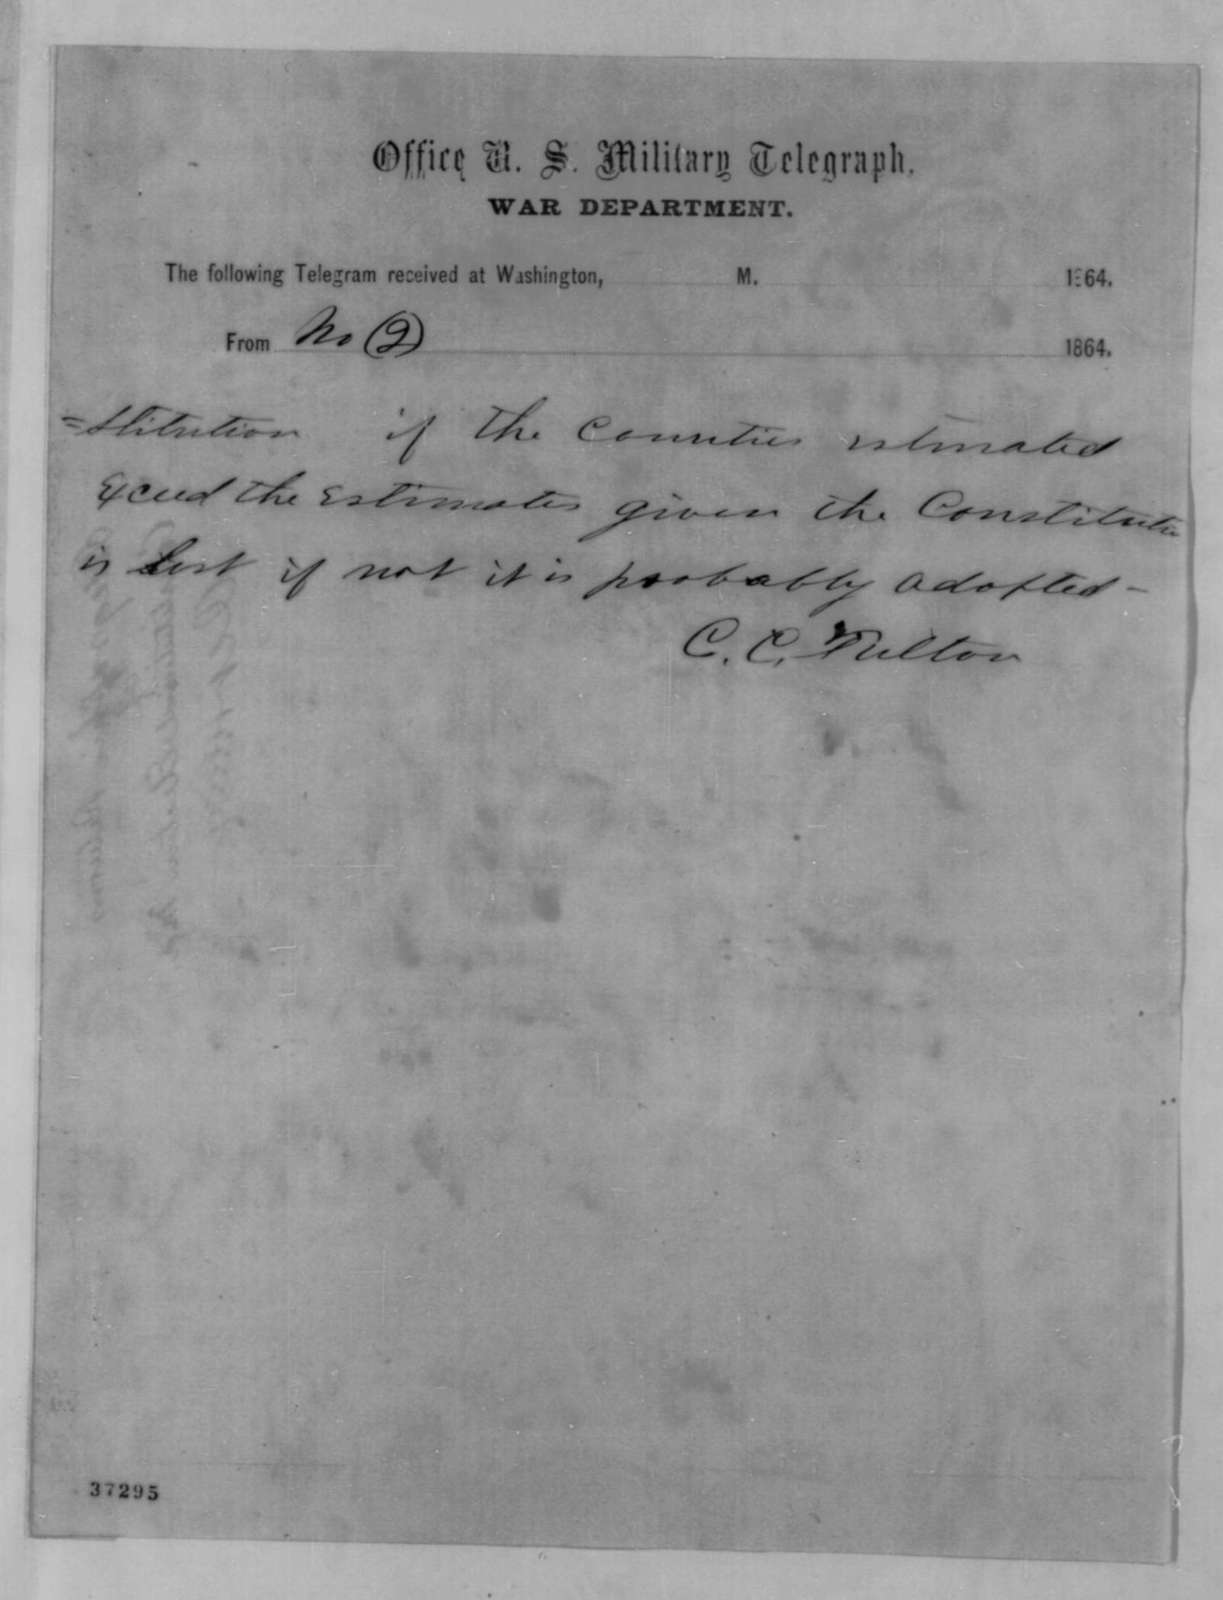 Charles C. Fulton to Henry W. Hoffman, Sunday, October 16, 1864  (Telegram reporting Maryland election results)